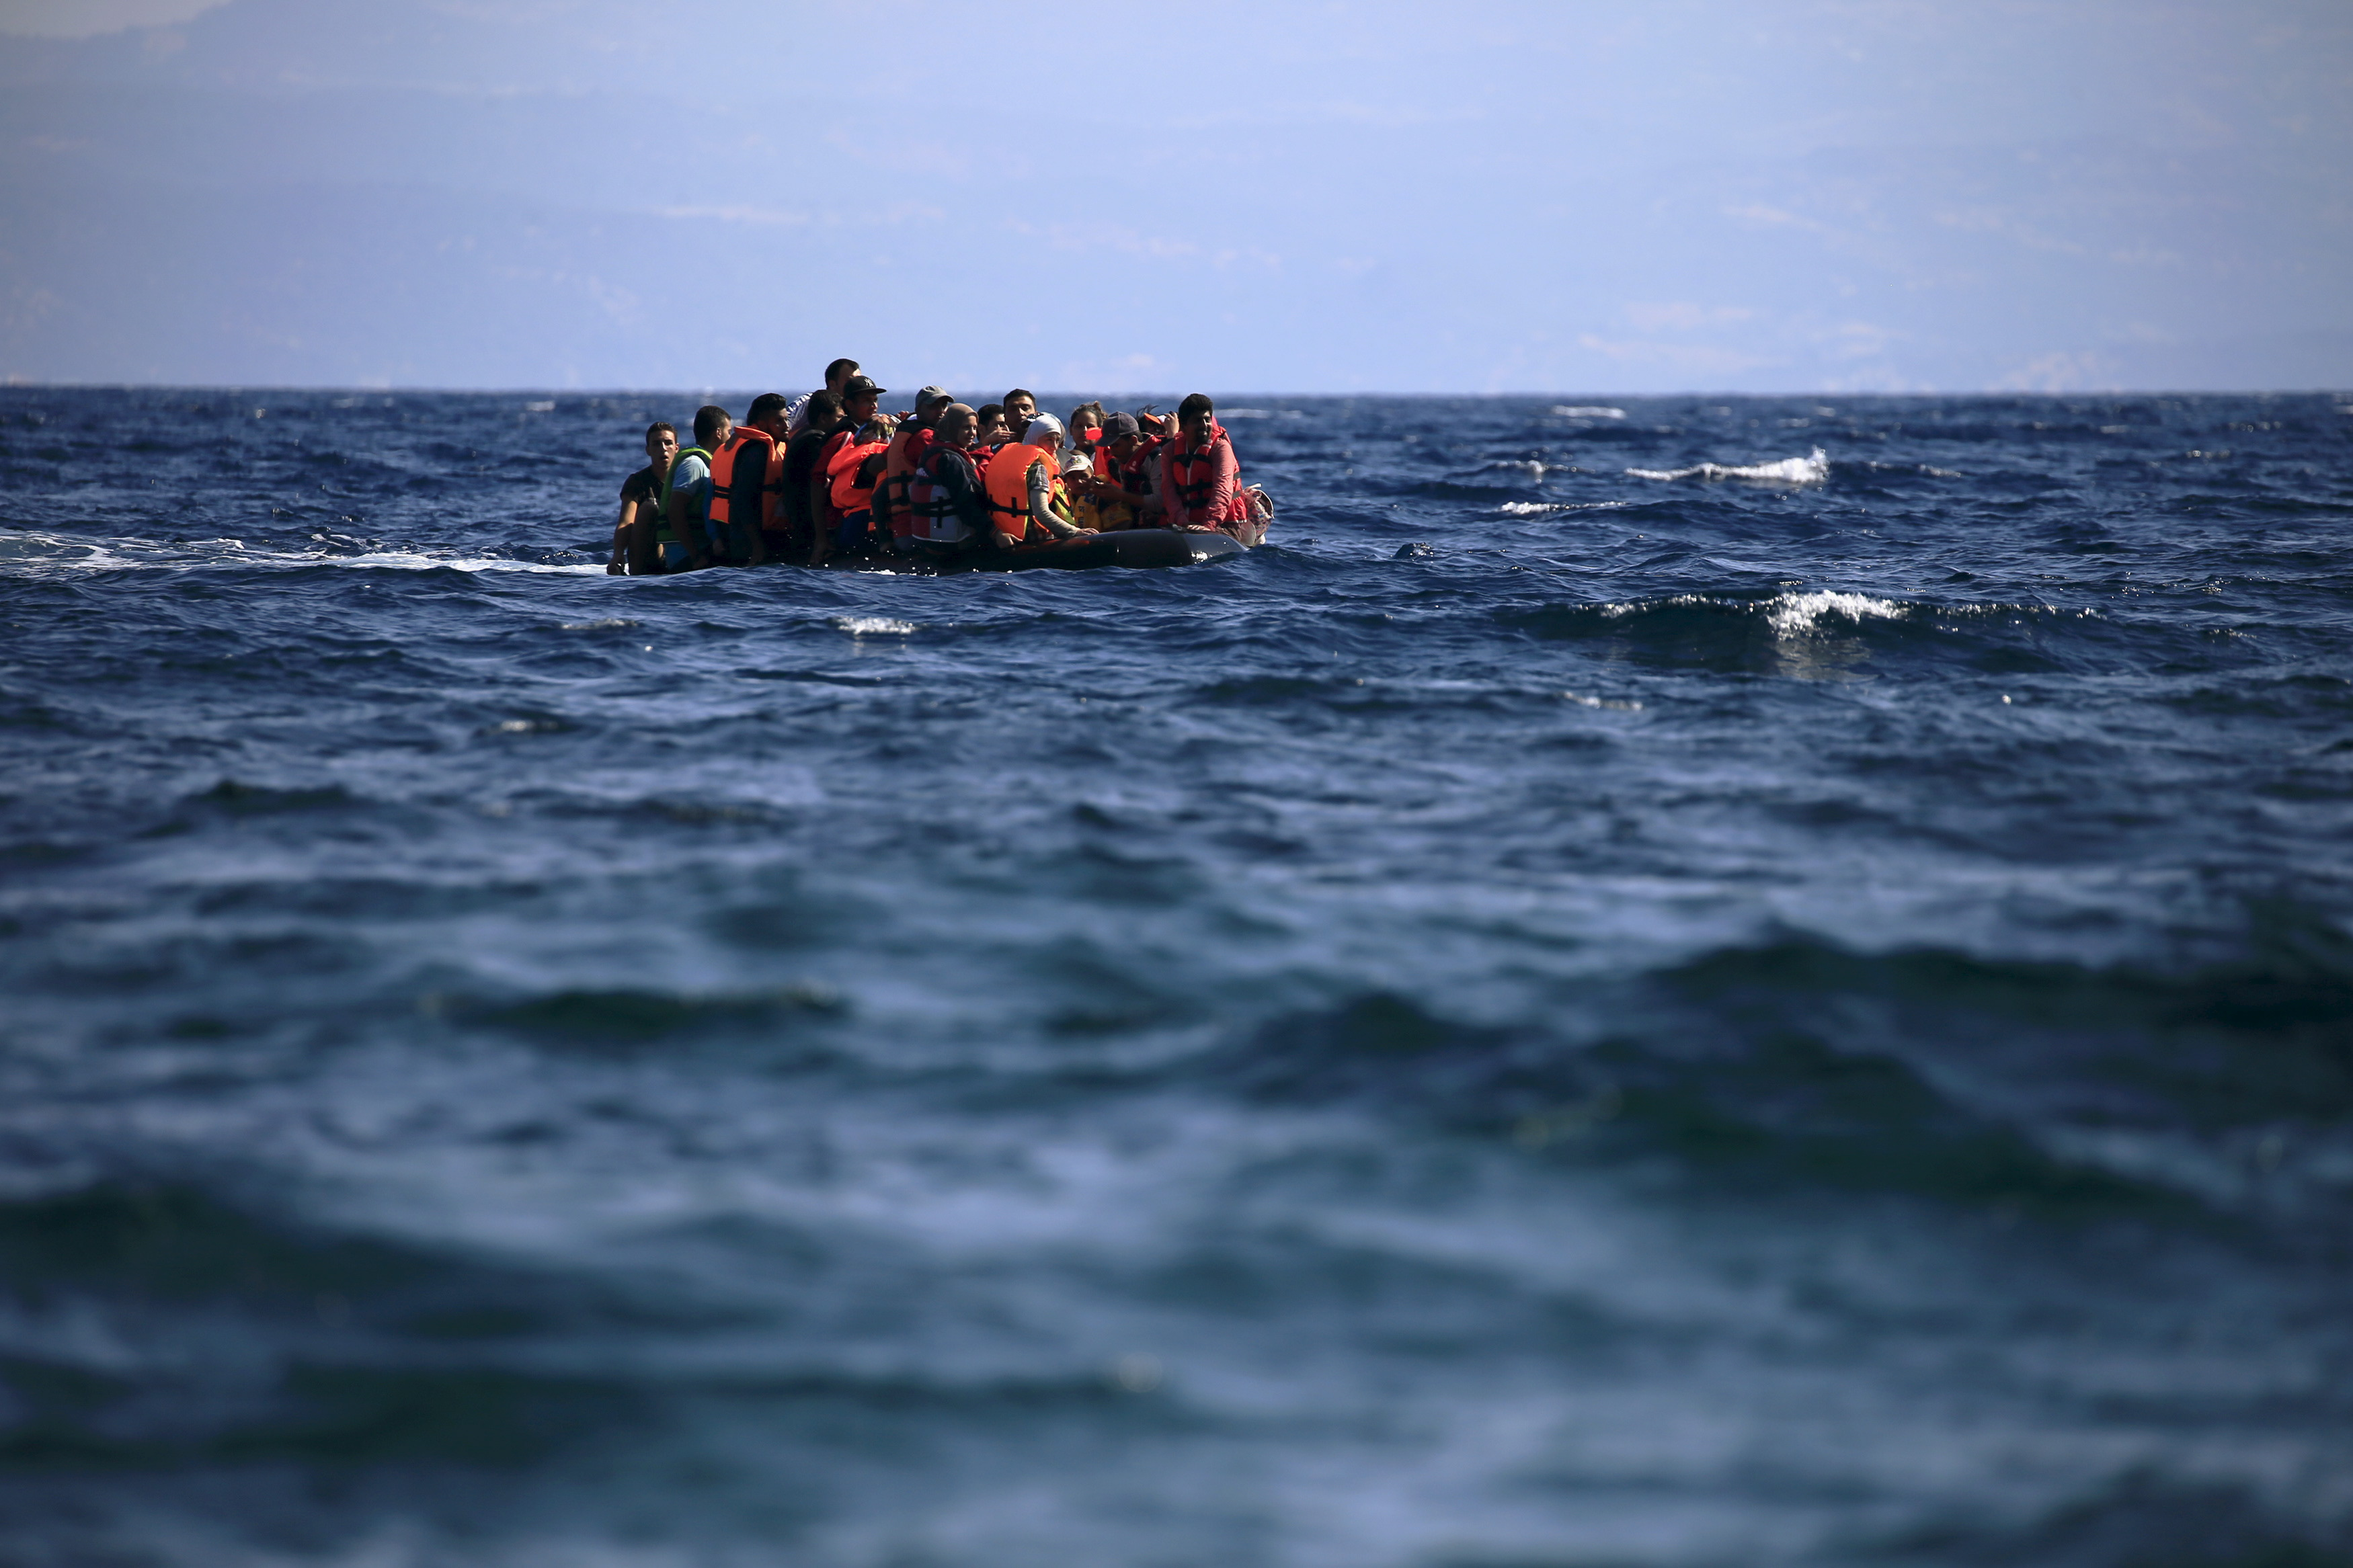 Syrian refugees on a dinghy approach, in rough seas, a beach on the island of Lesbos, Greece August 23, 2015. Photo by Alkis Konstantinidis/Reuters.